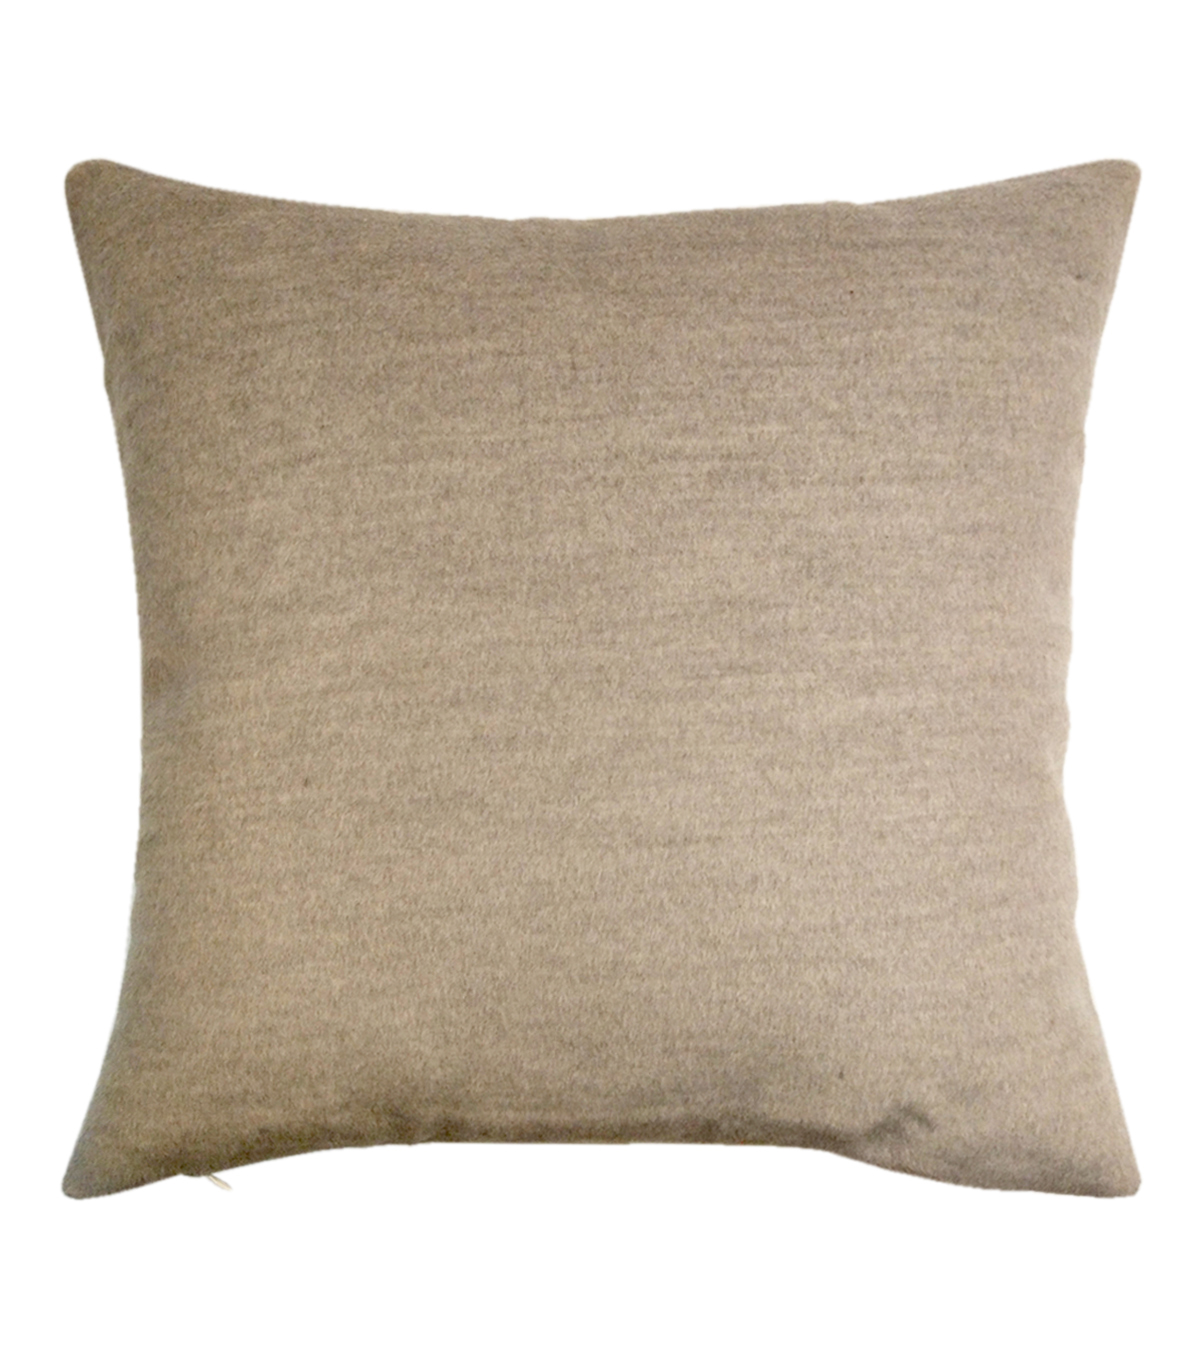 Maker\u0027s Holiday Christmas Pillow-Beige